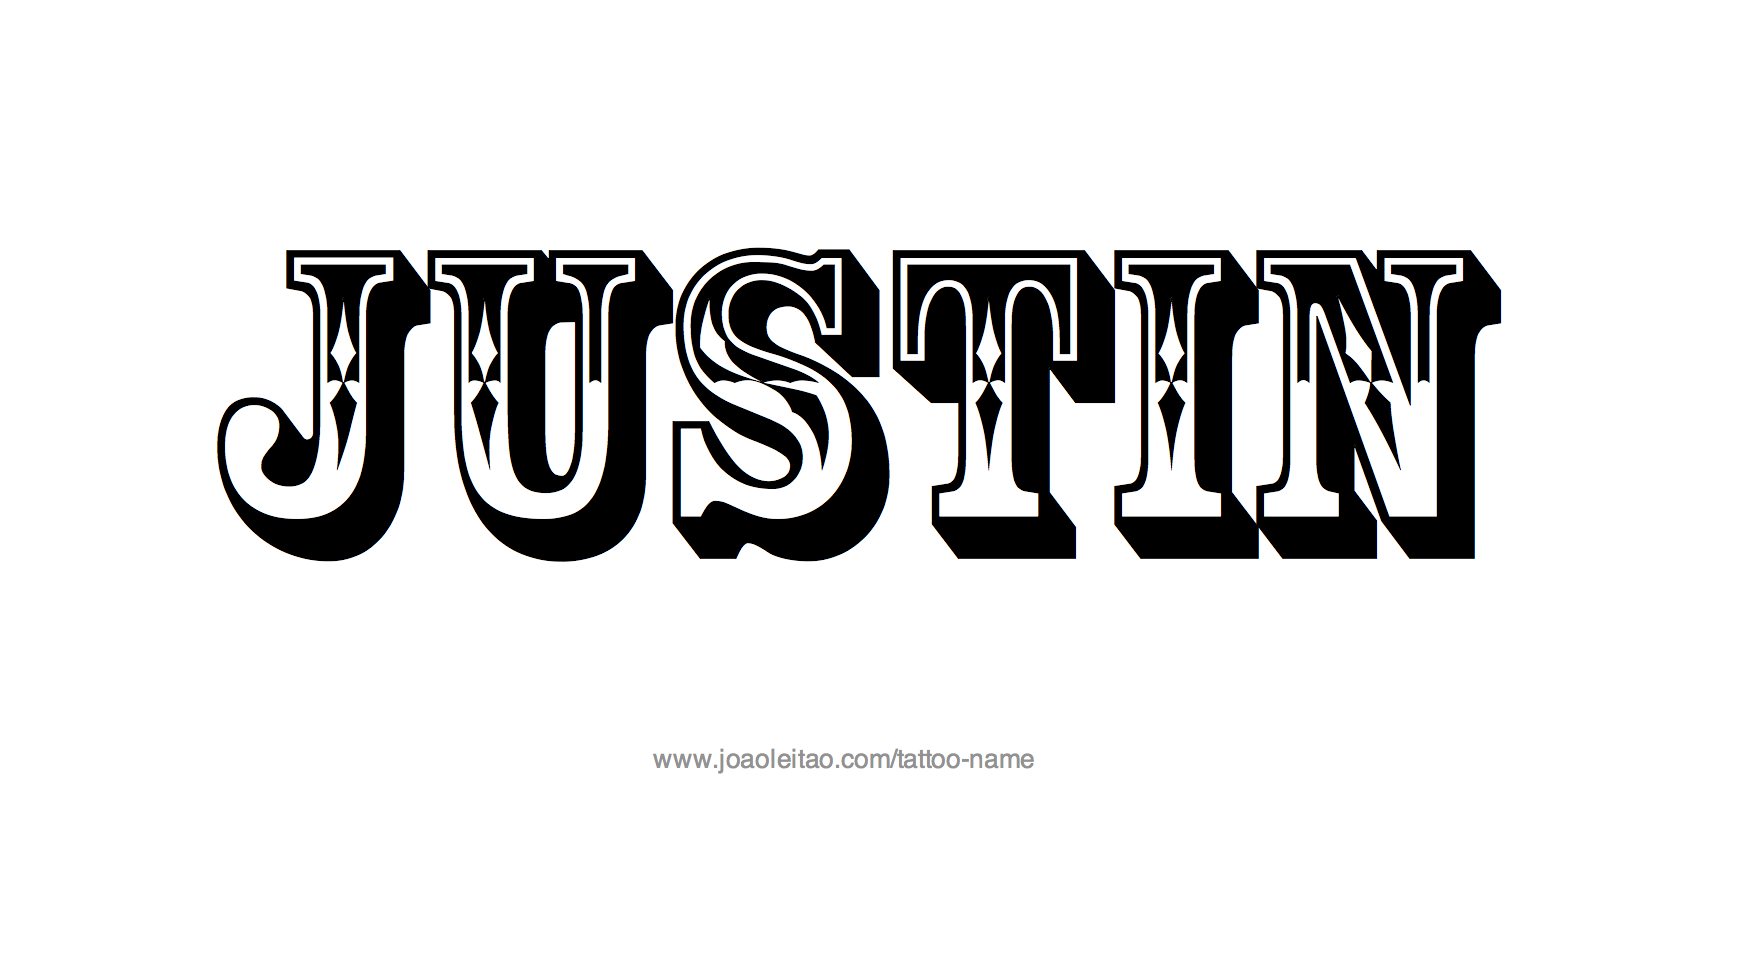 Justin Name Tattoo Designs